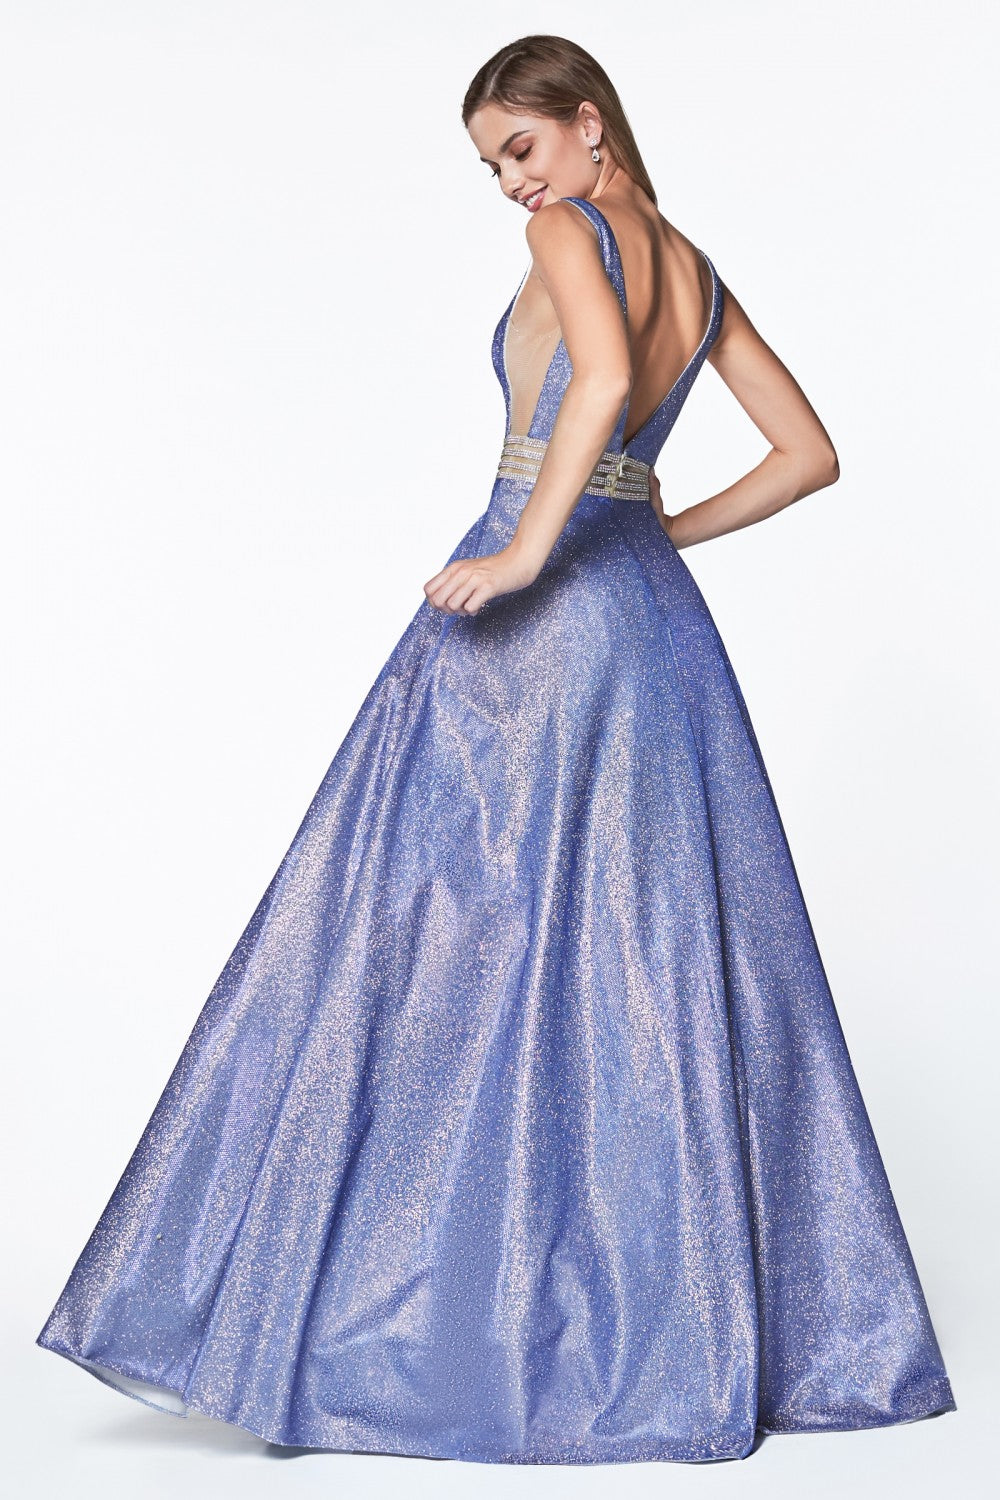 Deep V-Neckline Ball Gown With Glitter Fabric And Beaded Belt